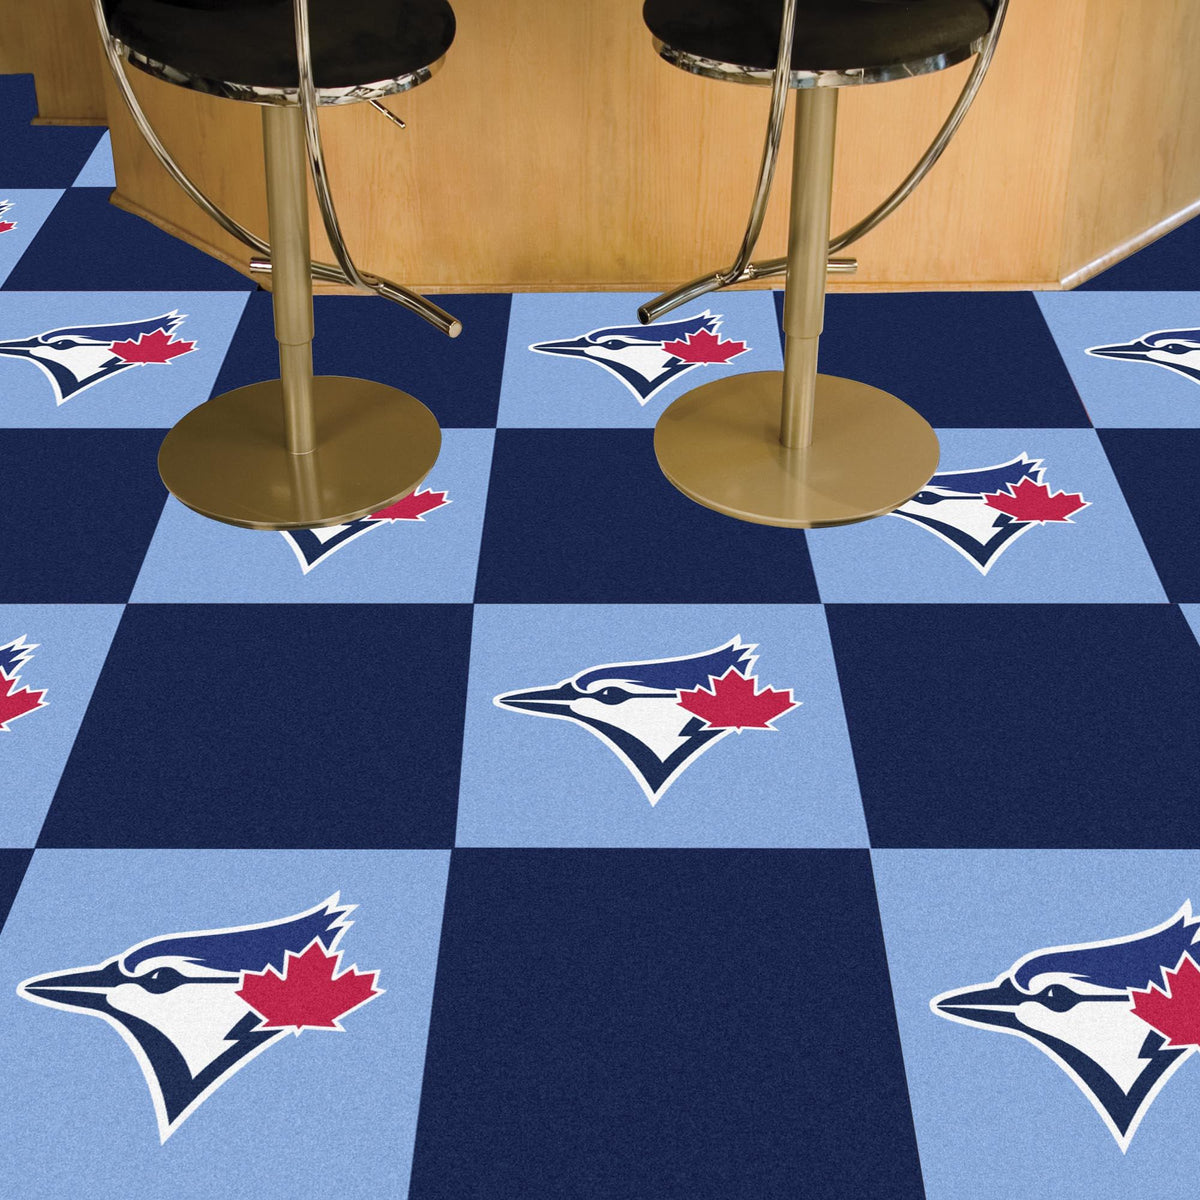 MLB - Team Carpet Tiles MLB Mats, Carpet Tile Flooring, Team Carpet Tiles, MLB, Home Fan Mats Toronto Blue Jays 2